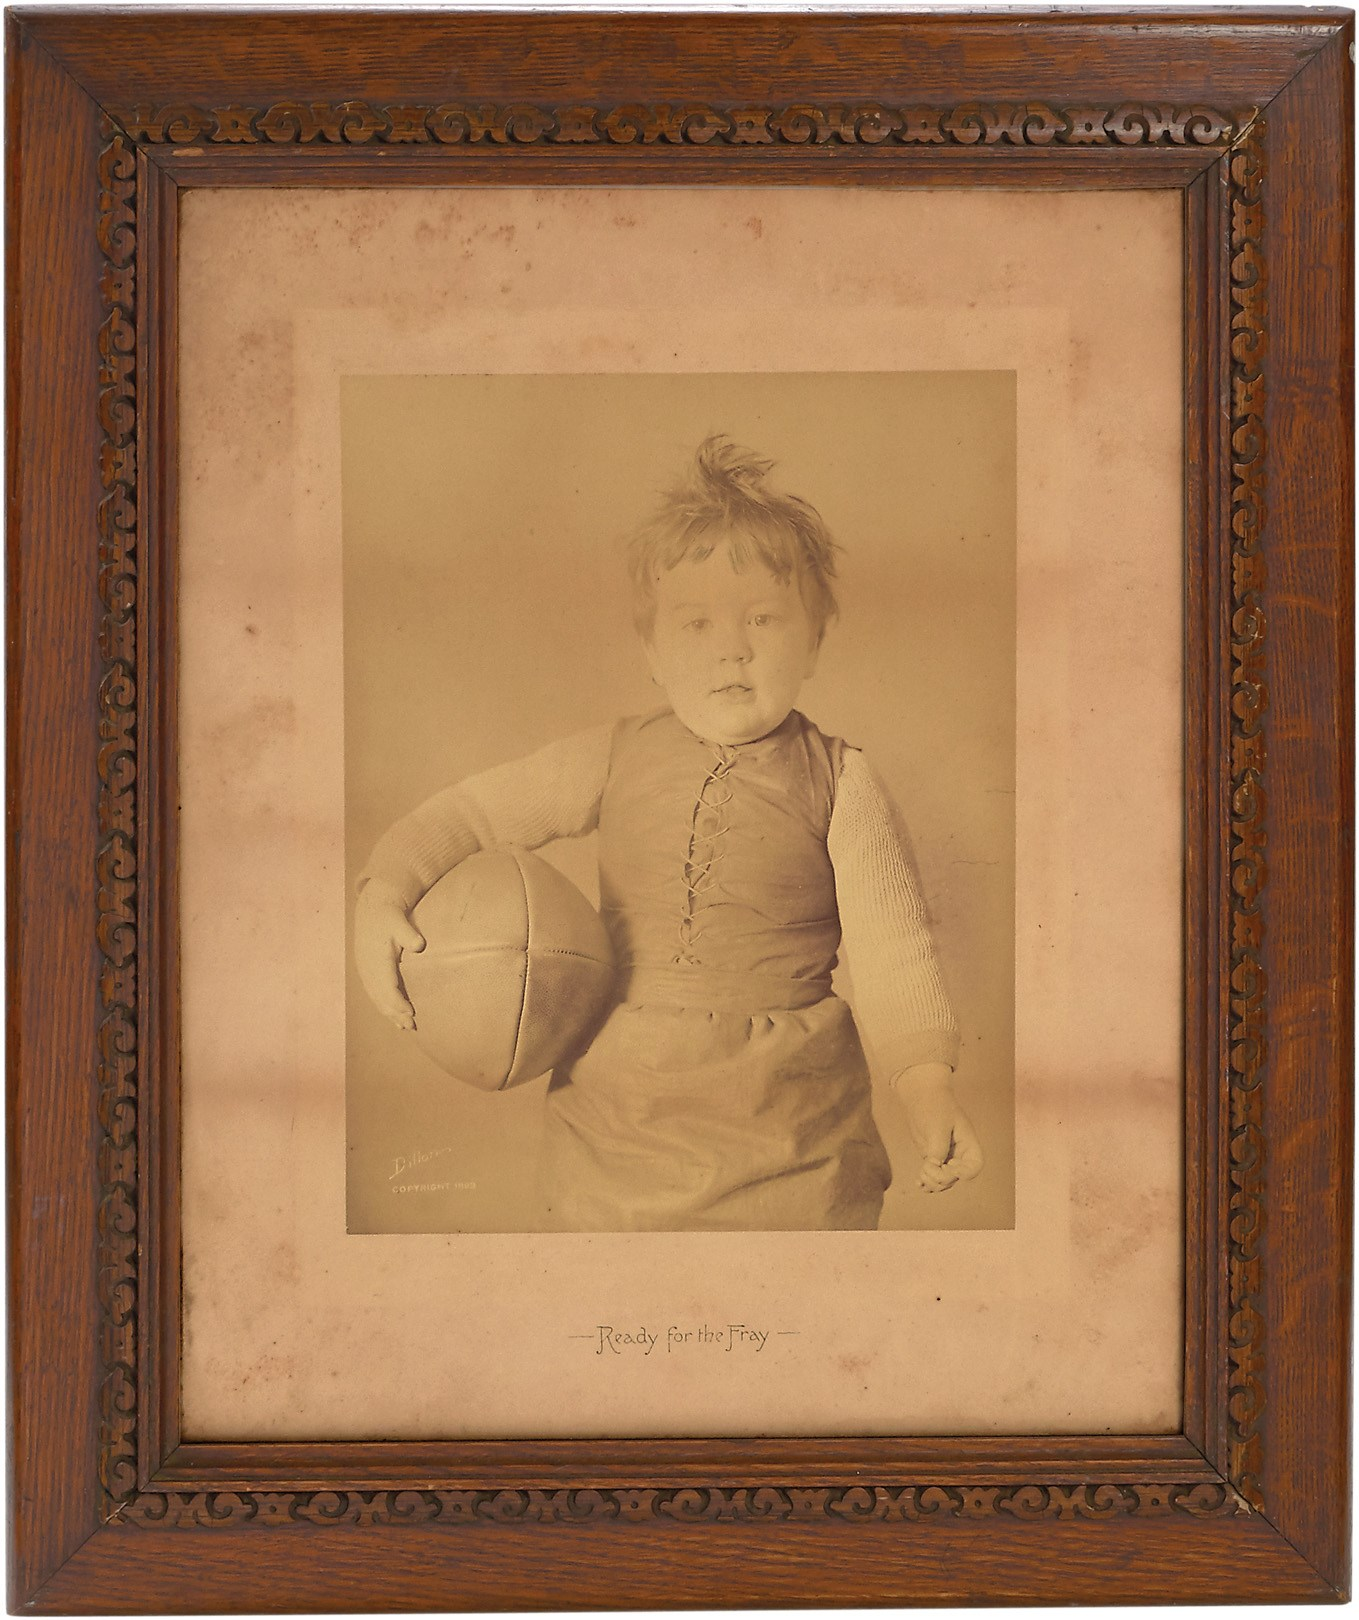 1893 Victorian Football Photo on Original Mount of Union Suited Child Mascot